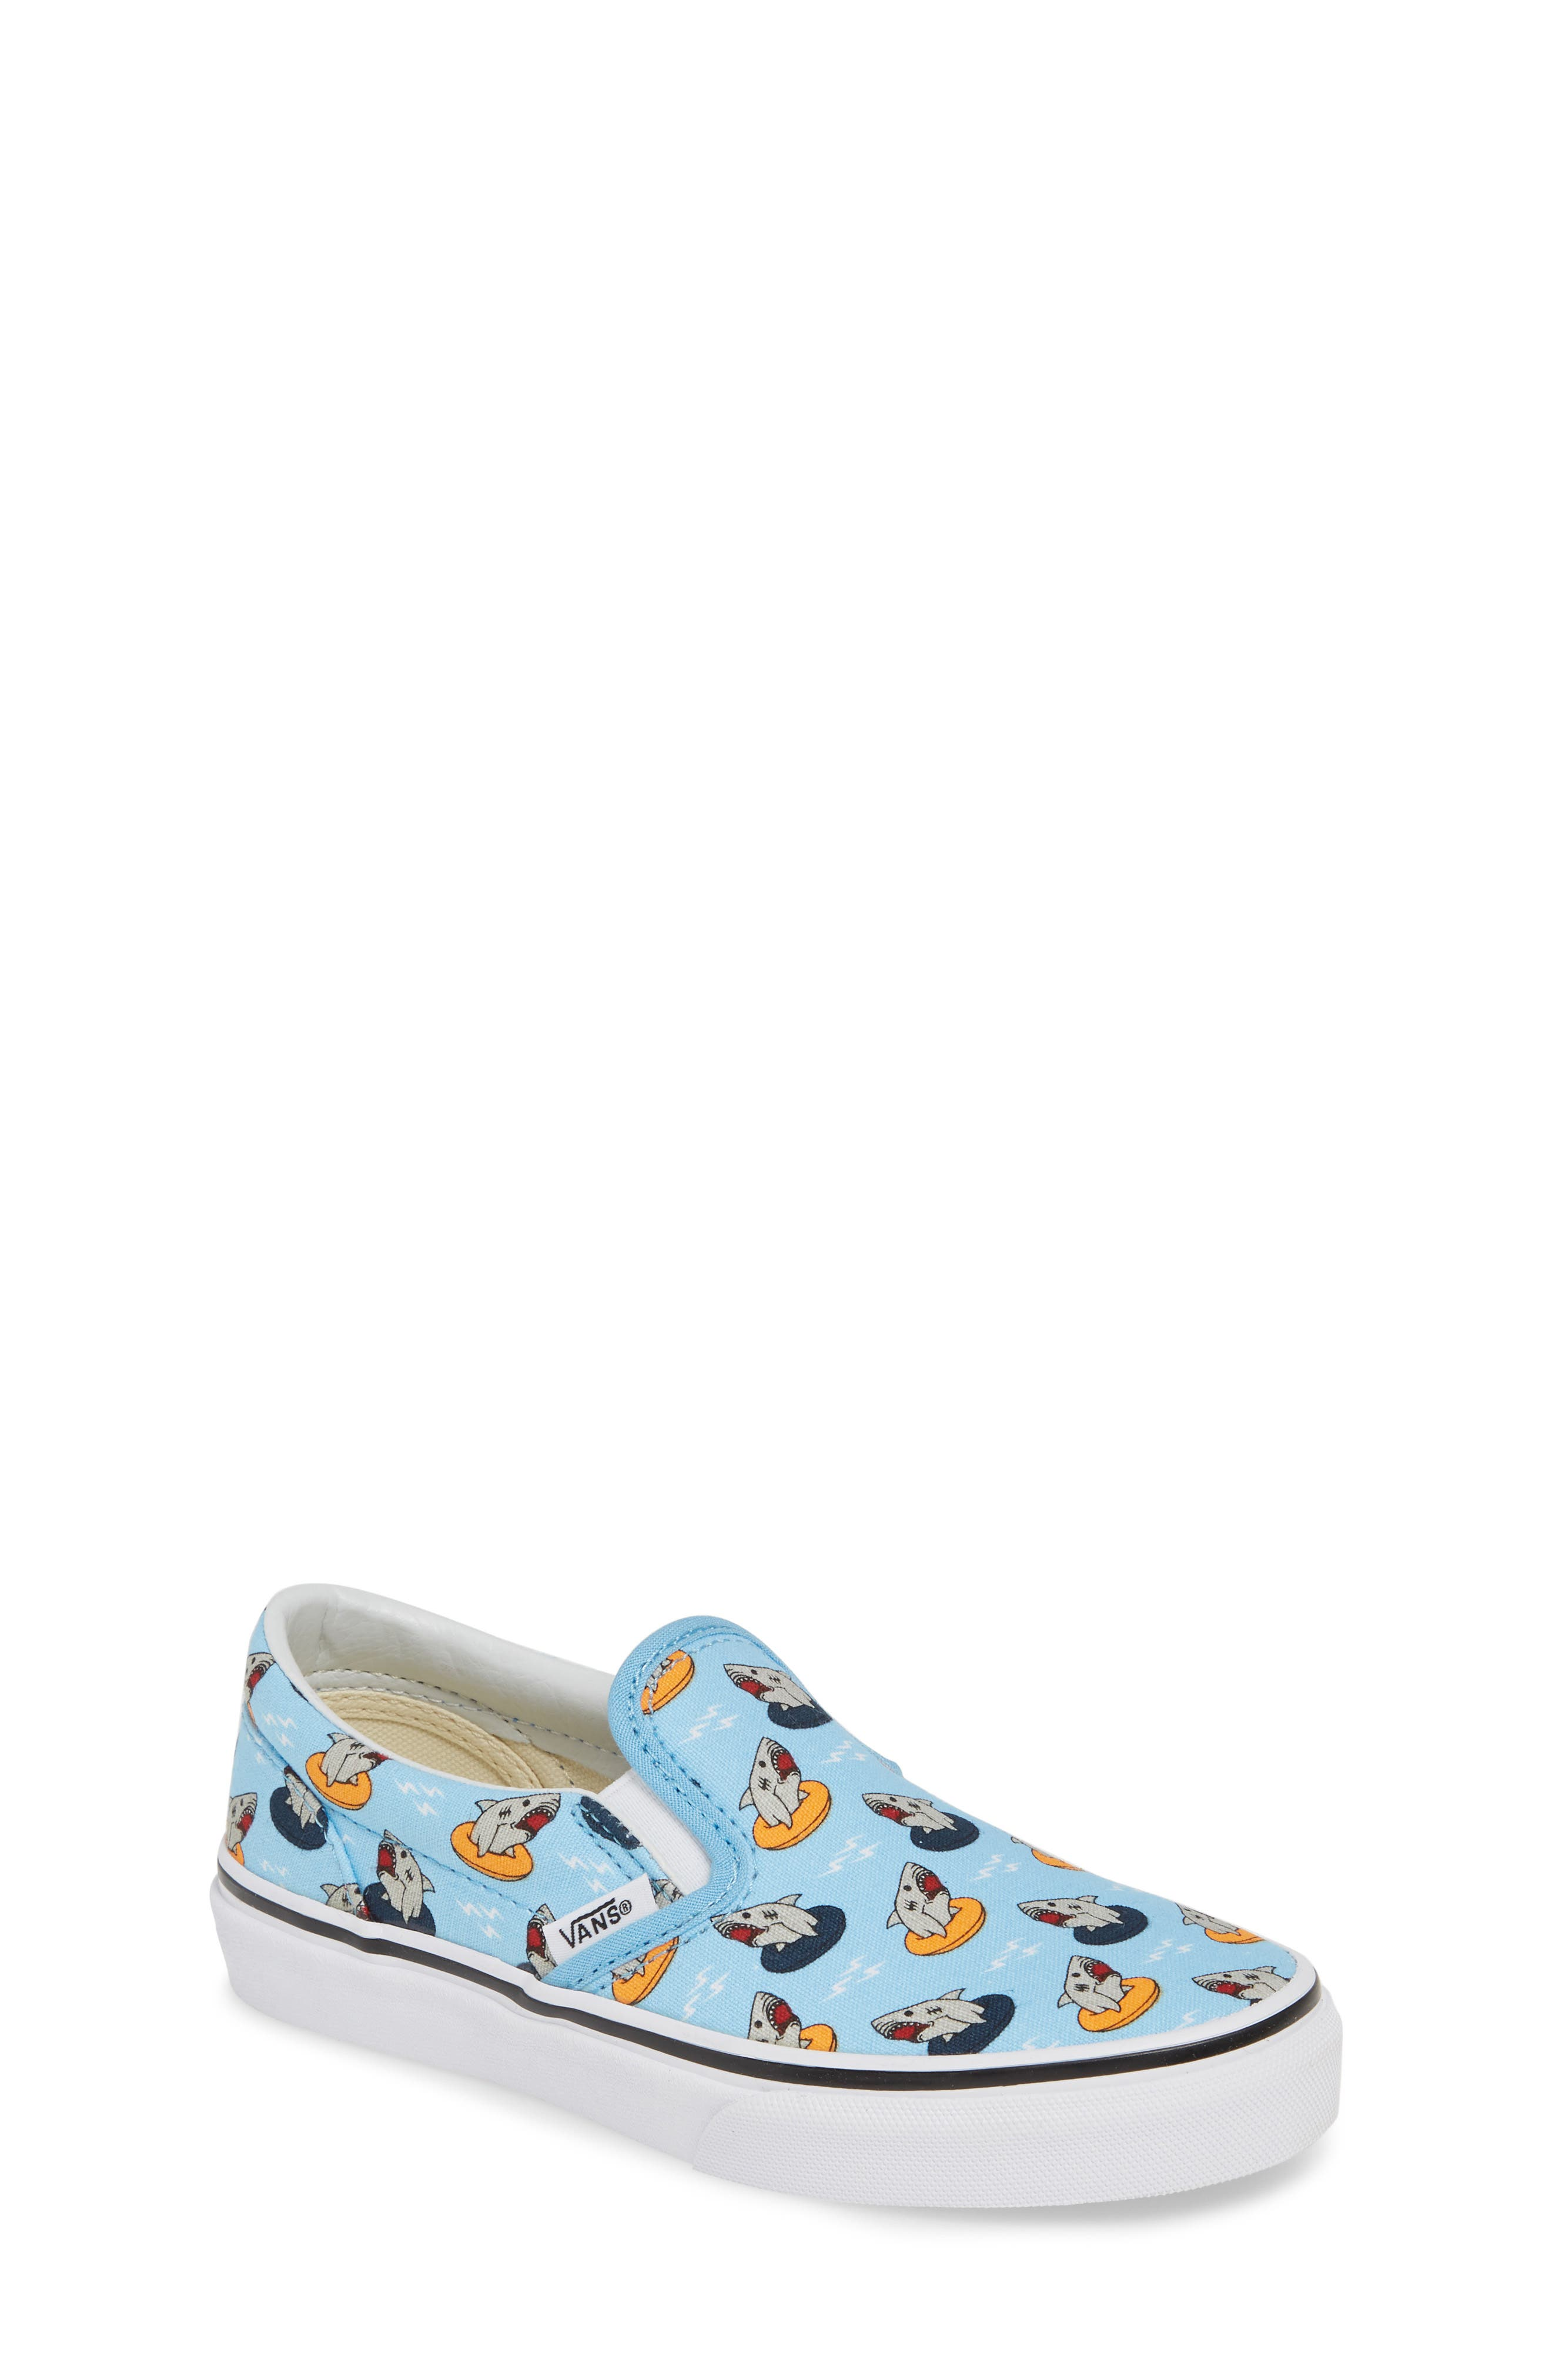 65b5532192f5 Kid s Vans  Classic  Slip-On